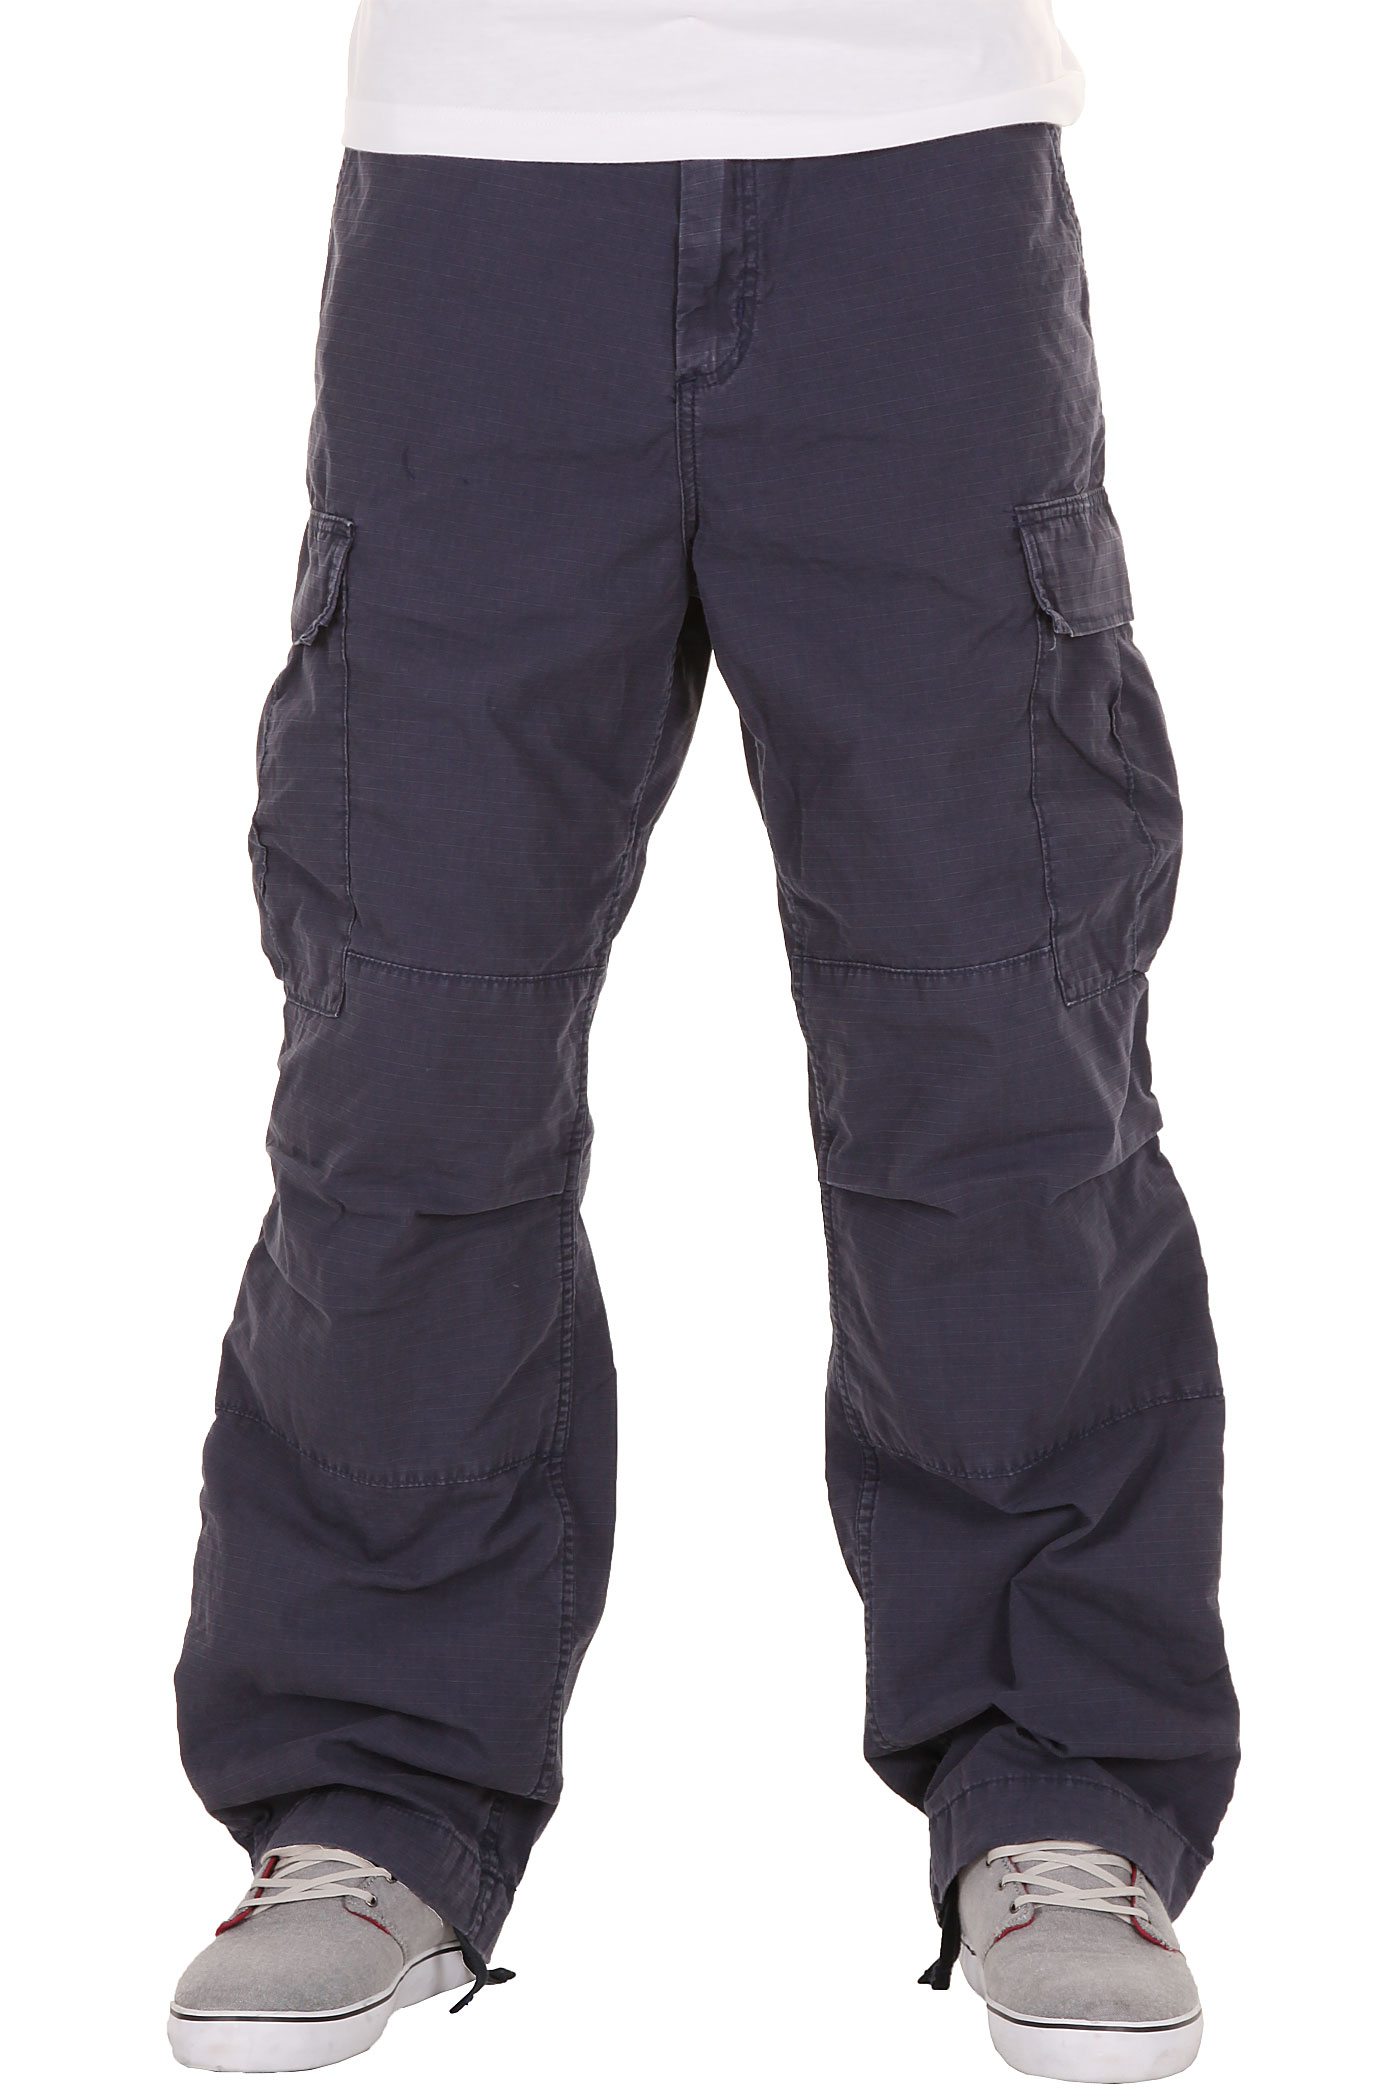 Carhartt Cargo Pant Columbia Pants (navy stone washed)